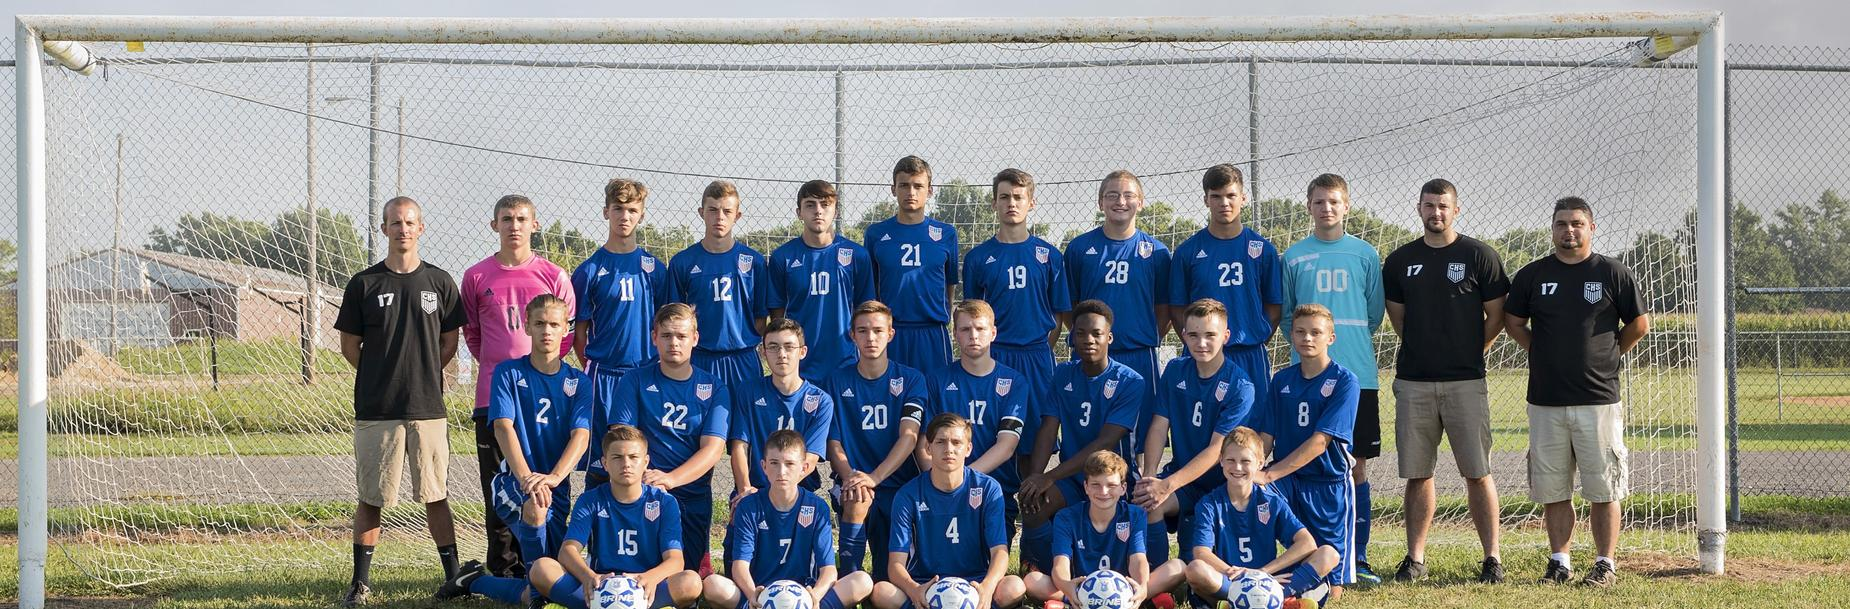 Carlinville High School Boys Soccer Team